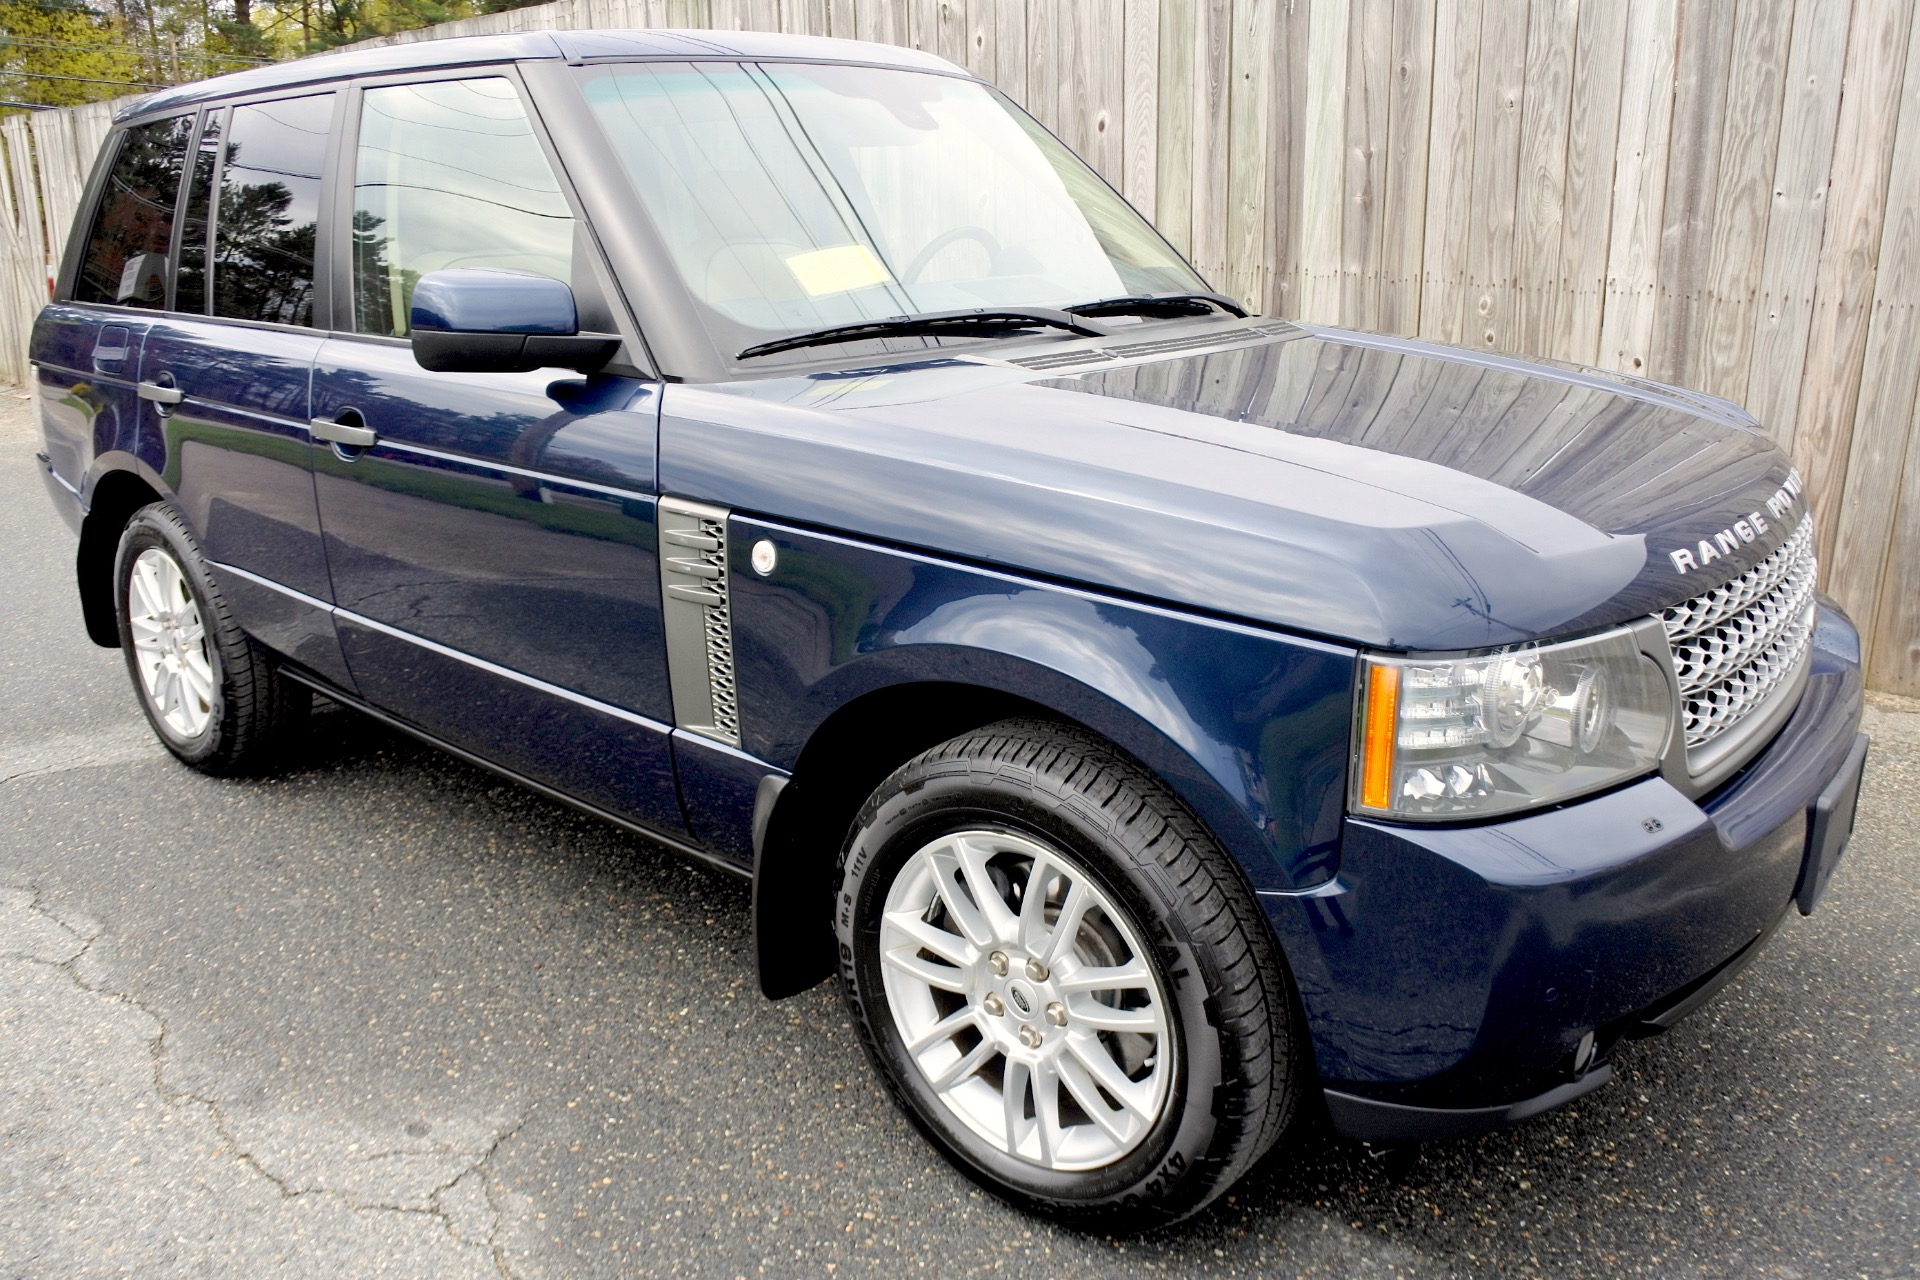 Used 2011 Land Rover Range Rover HSE Used 2011 Land Rover Range Rover HSE for sale  at Metro West Motorcars LLC in Shrewsbury MA 7